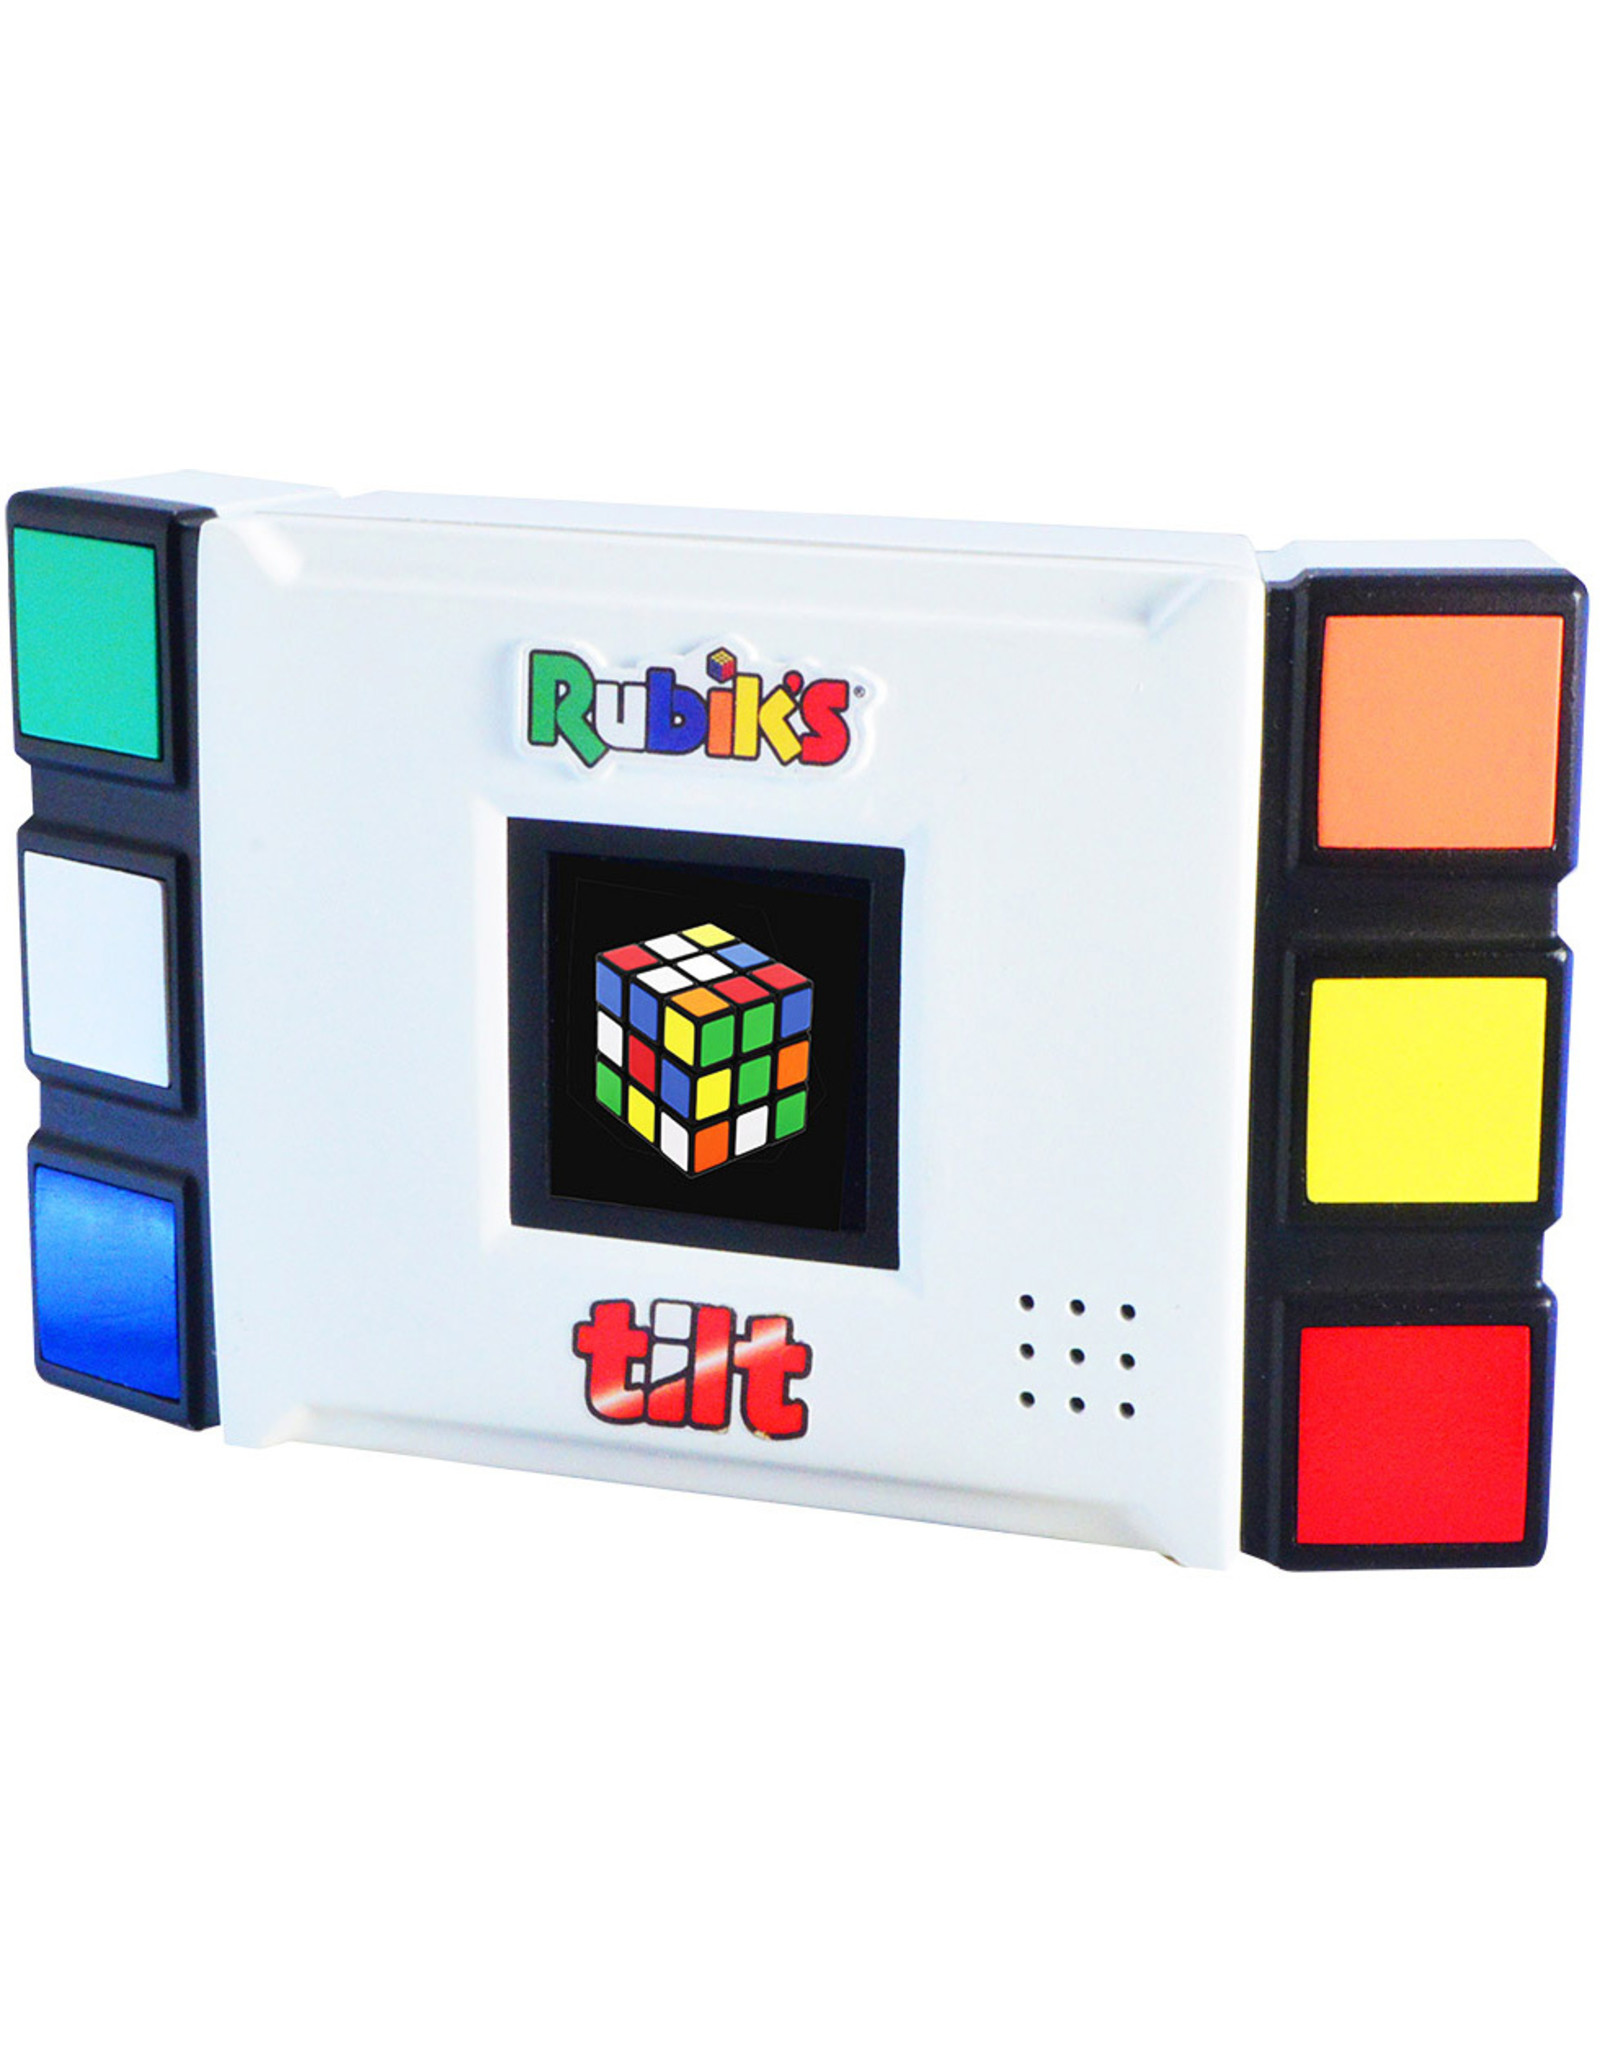 Super Impulse Rubik's Tilt Motion Arcade